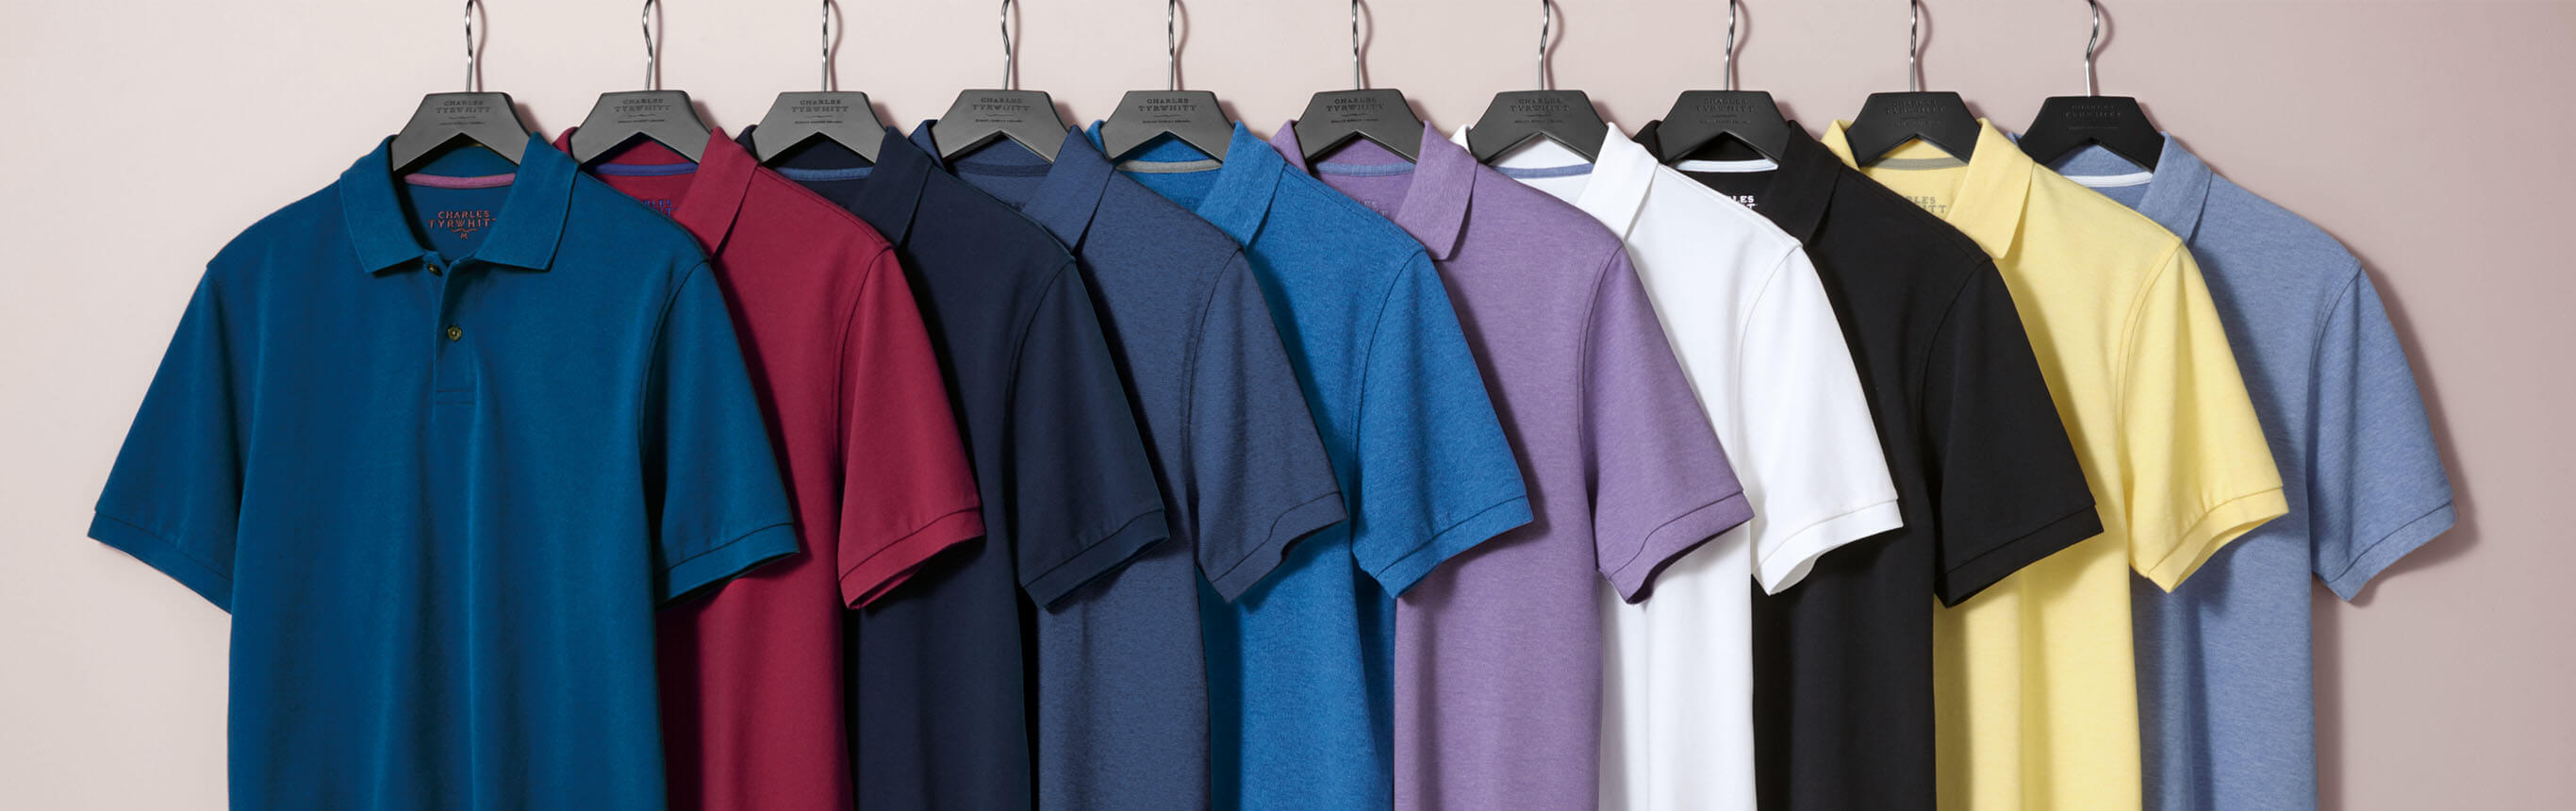 Image of polo tops